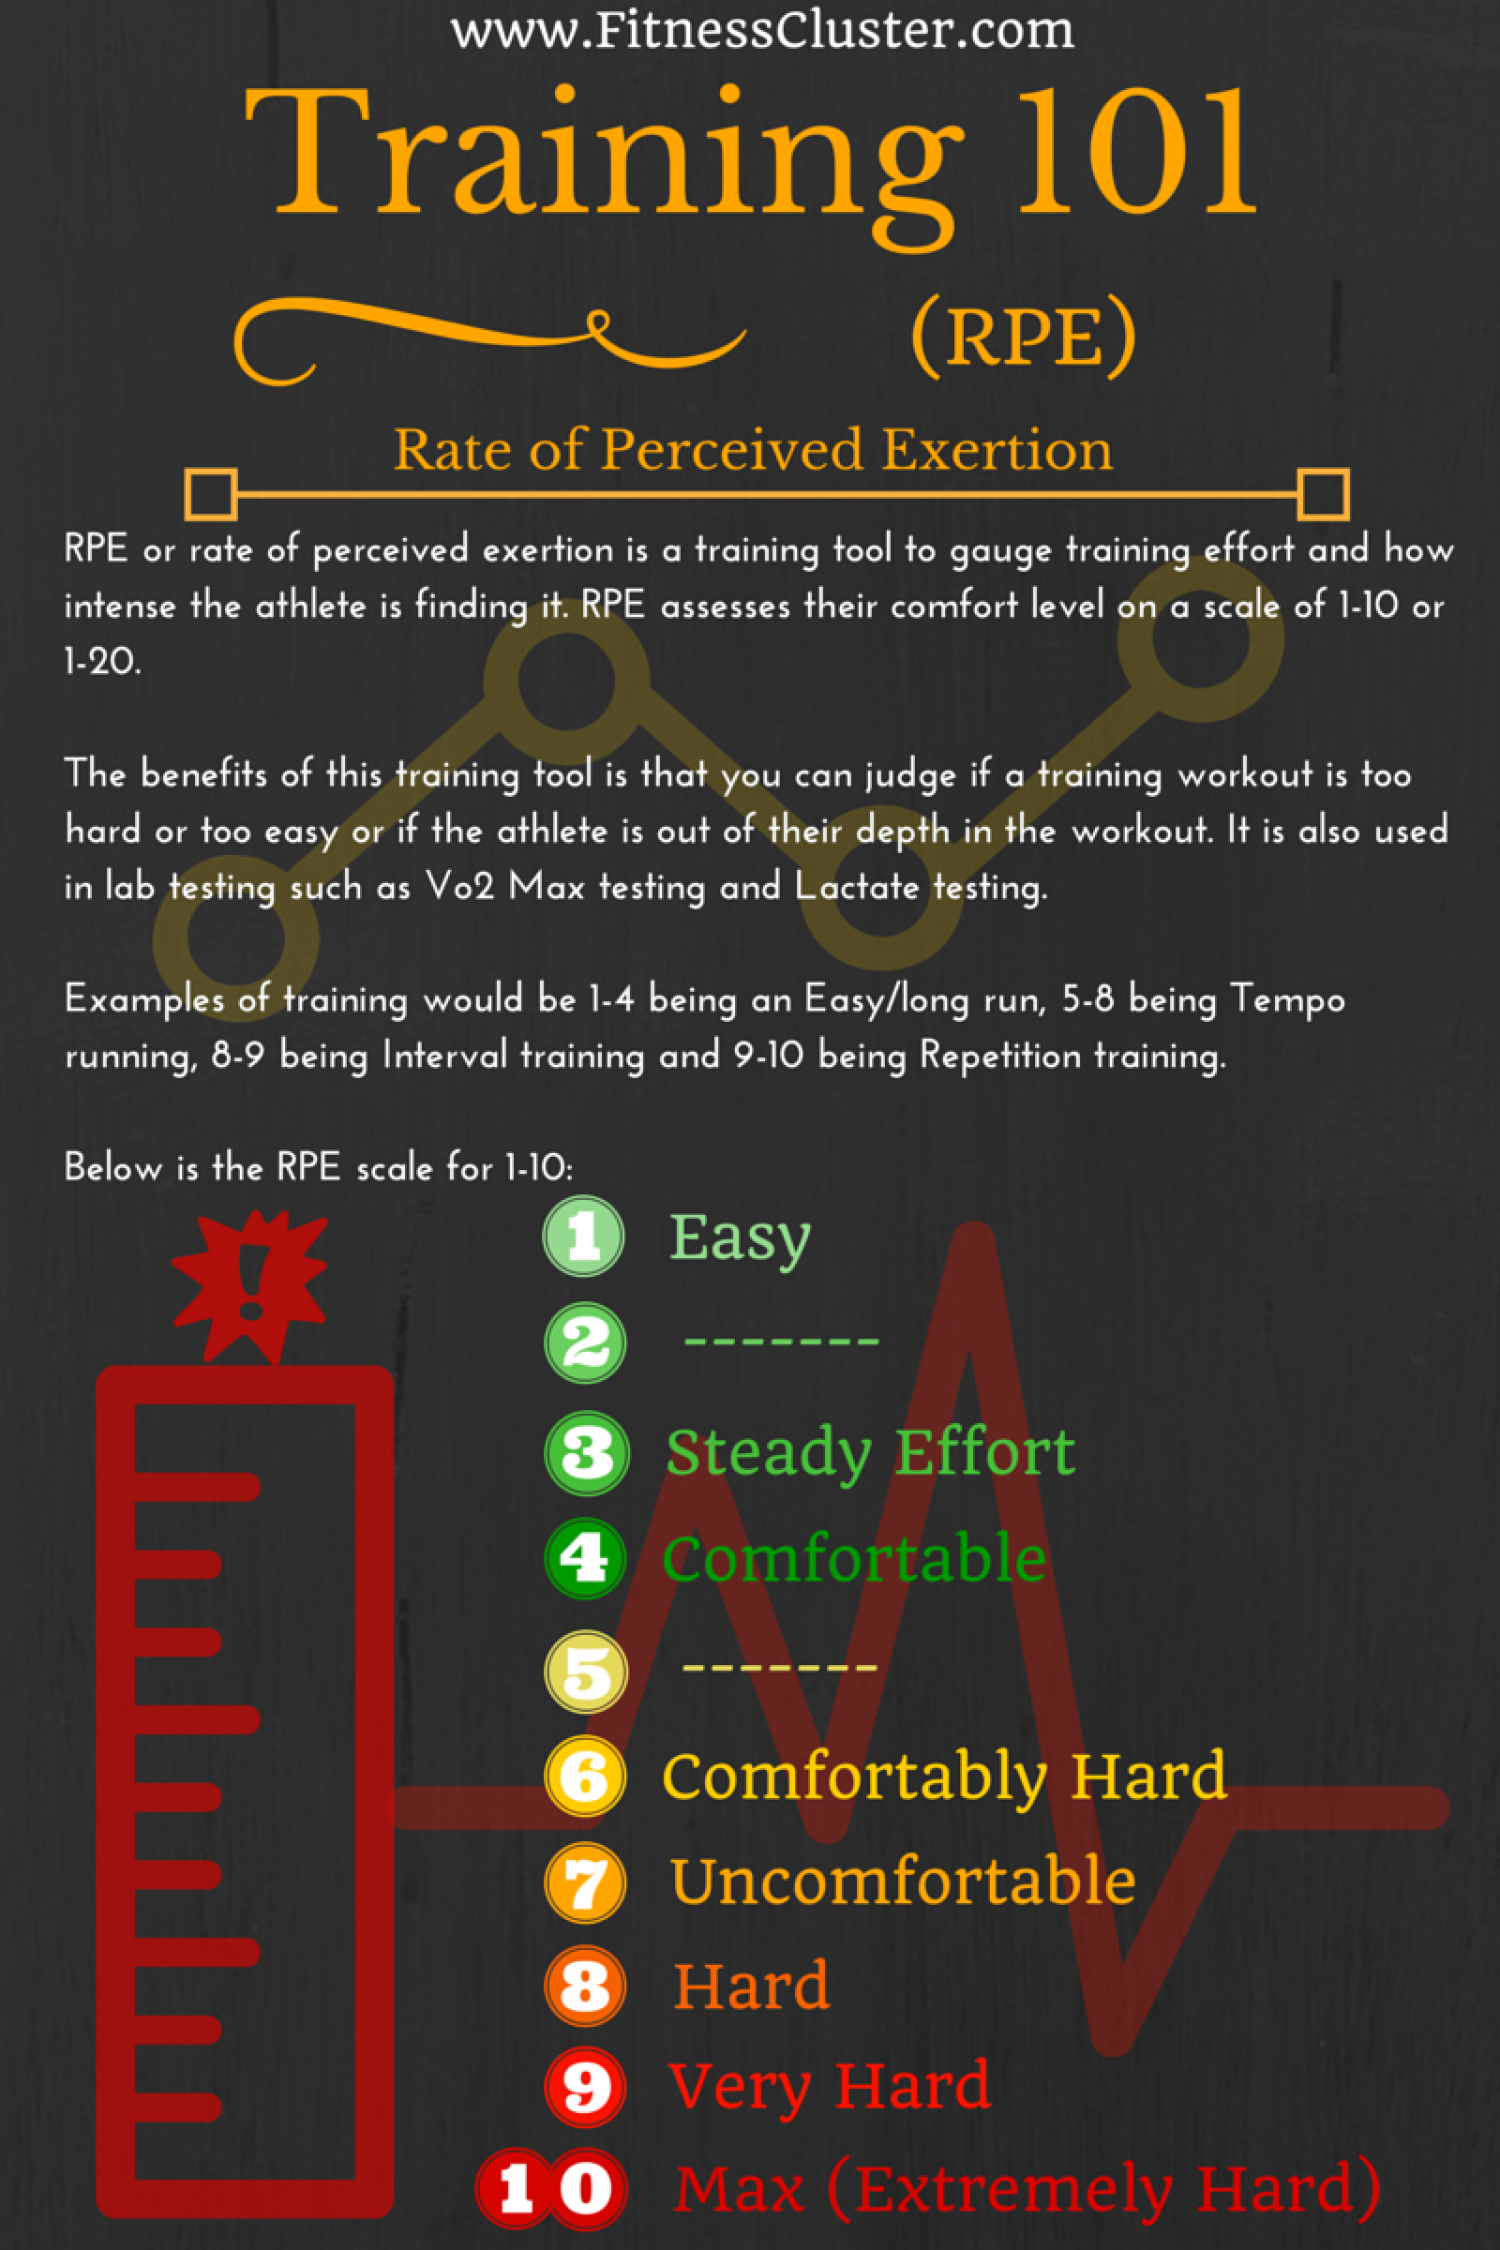 Training tool- Rate of perceived exertion explained Infographic